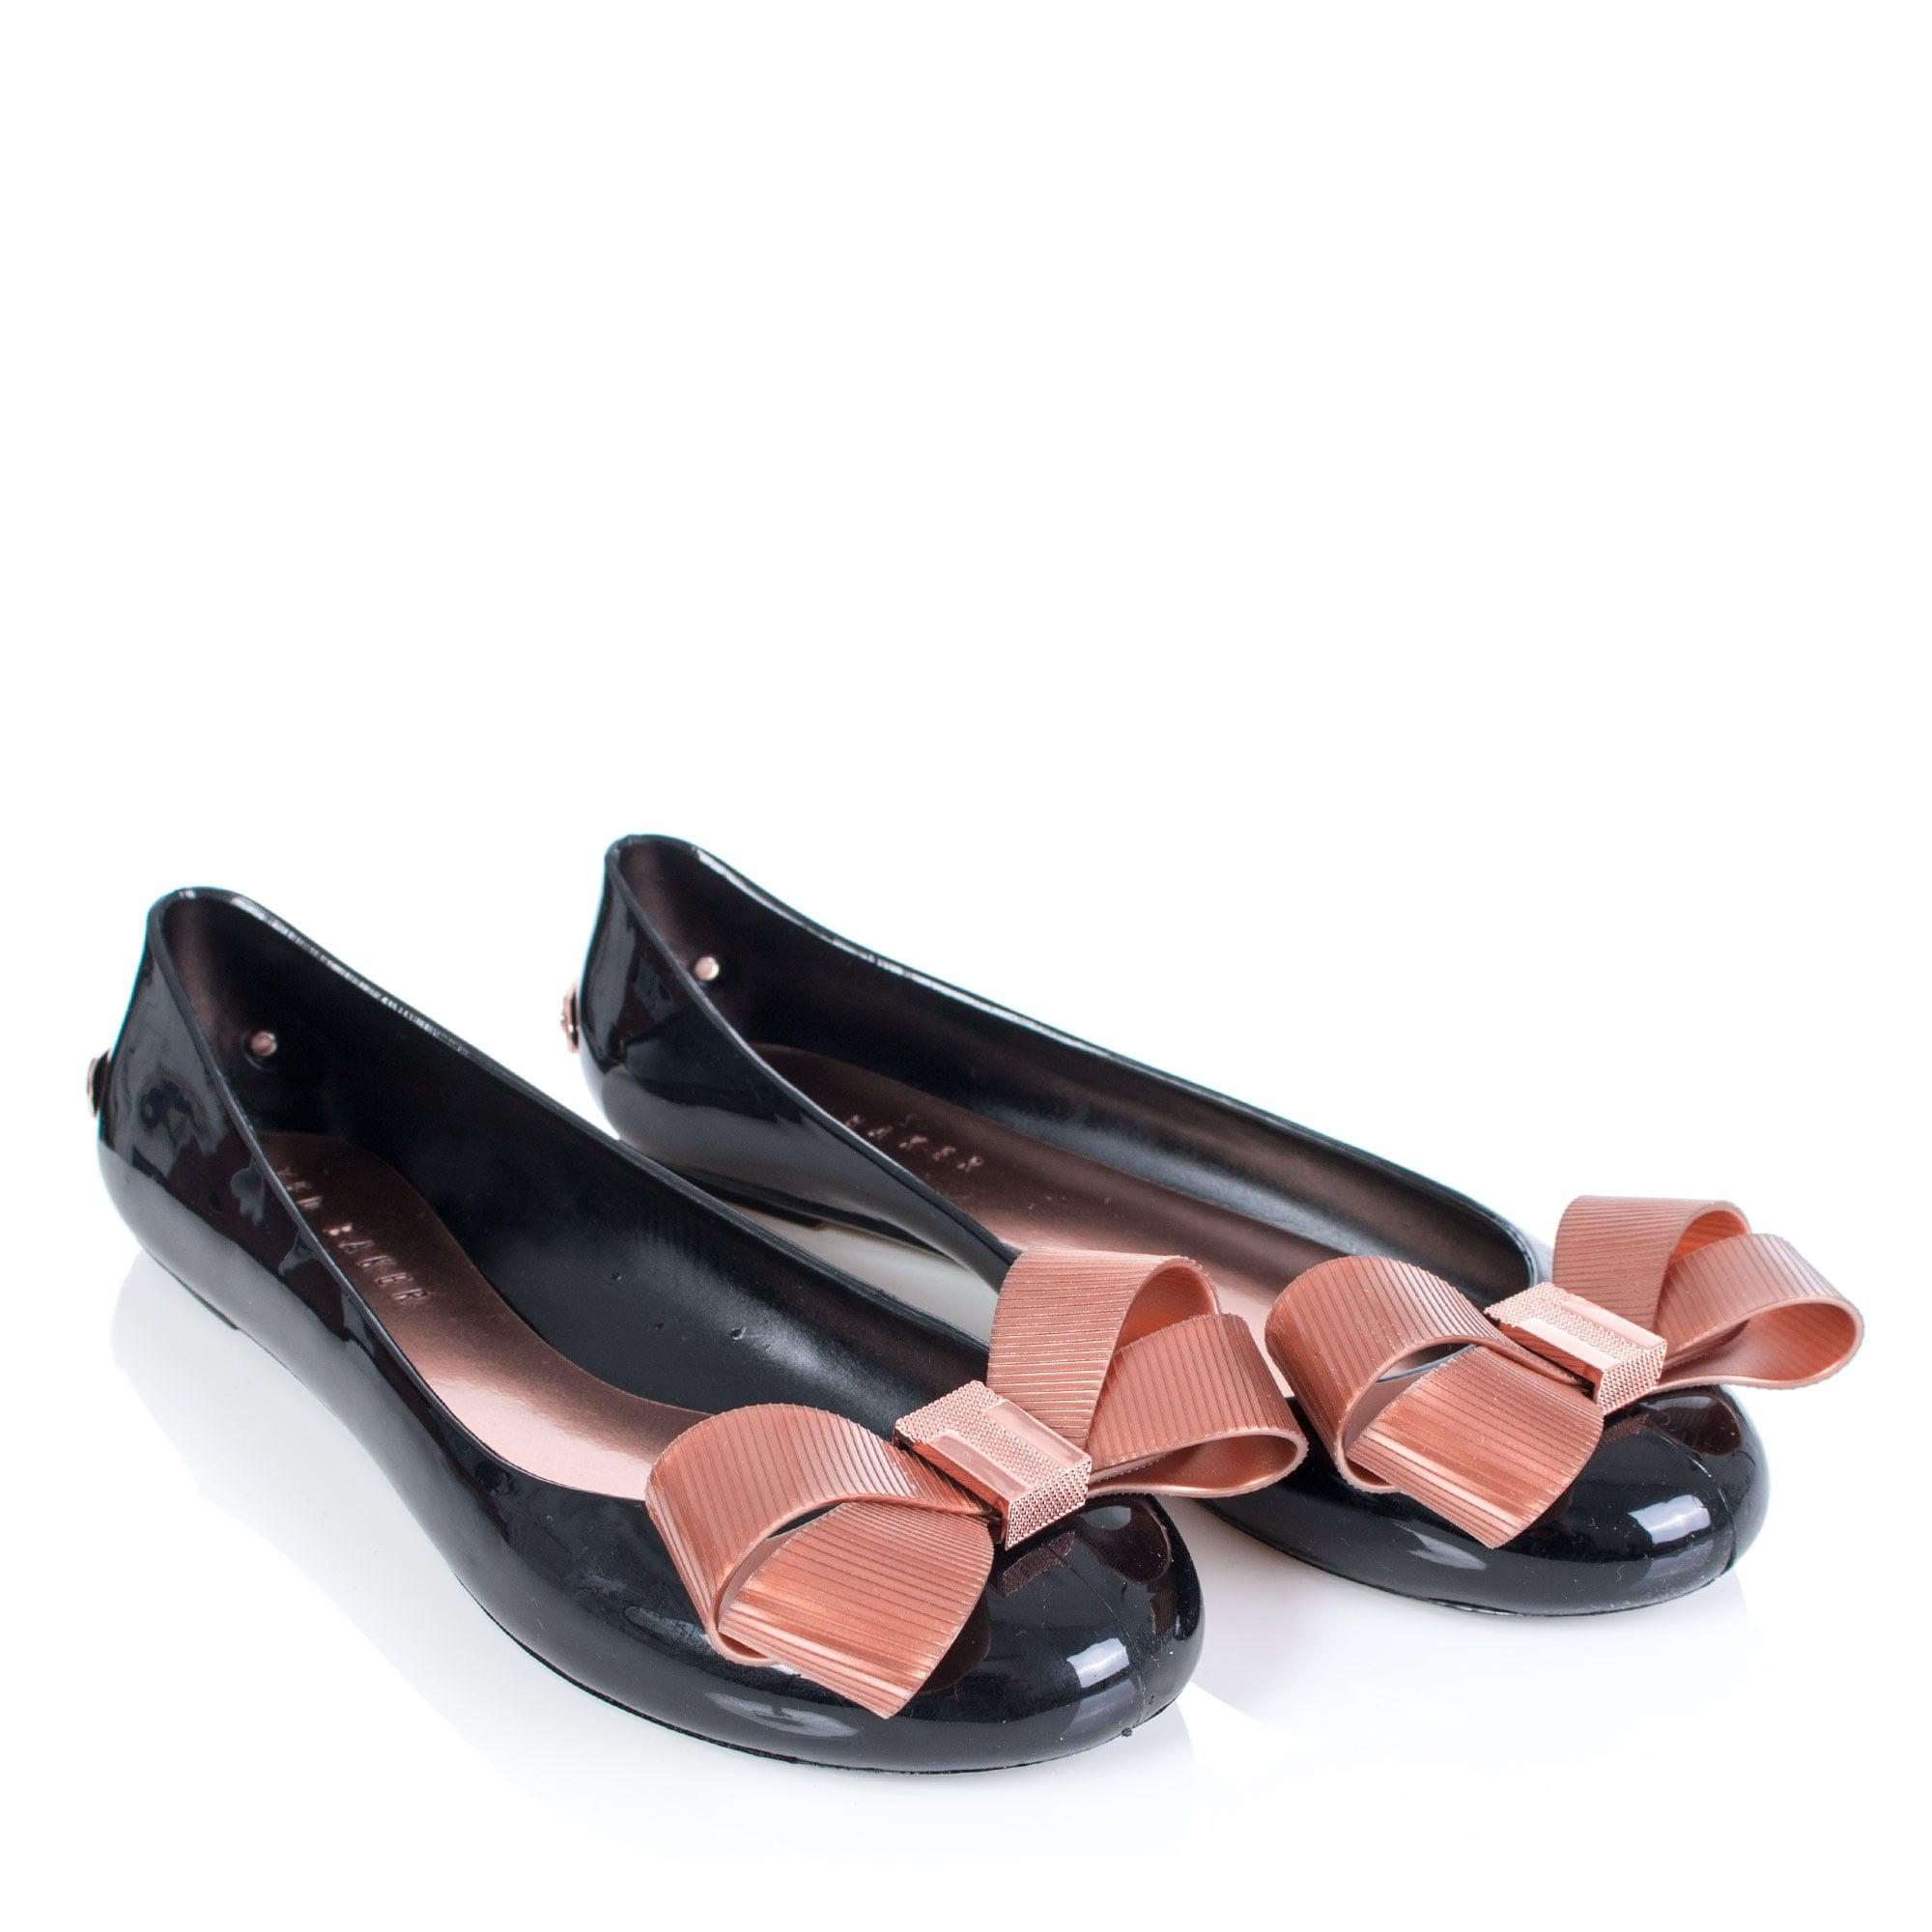 Ted Baker Bow Detail Jelly Pumps in